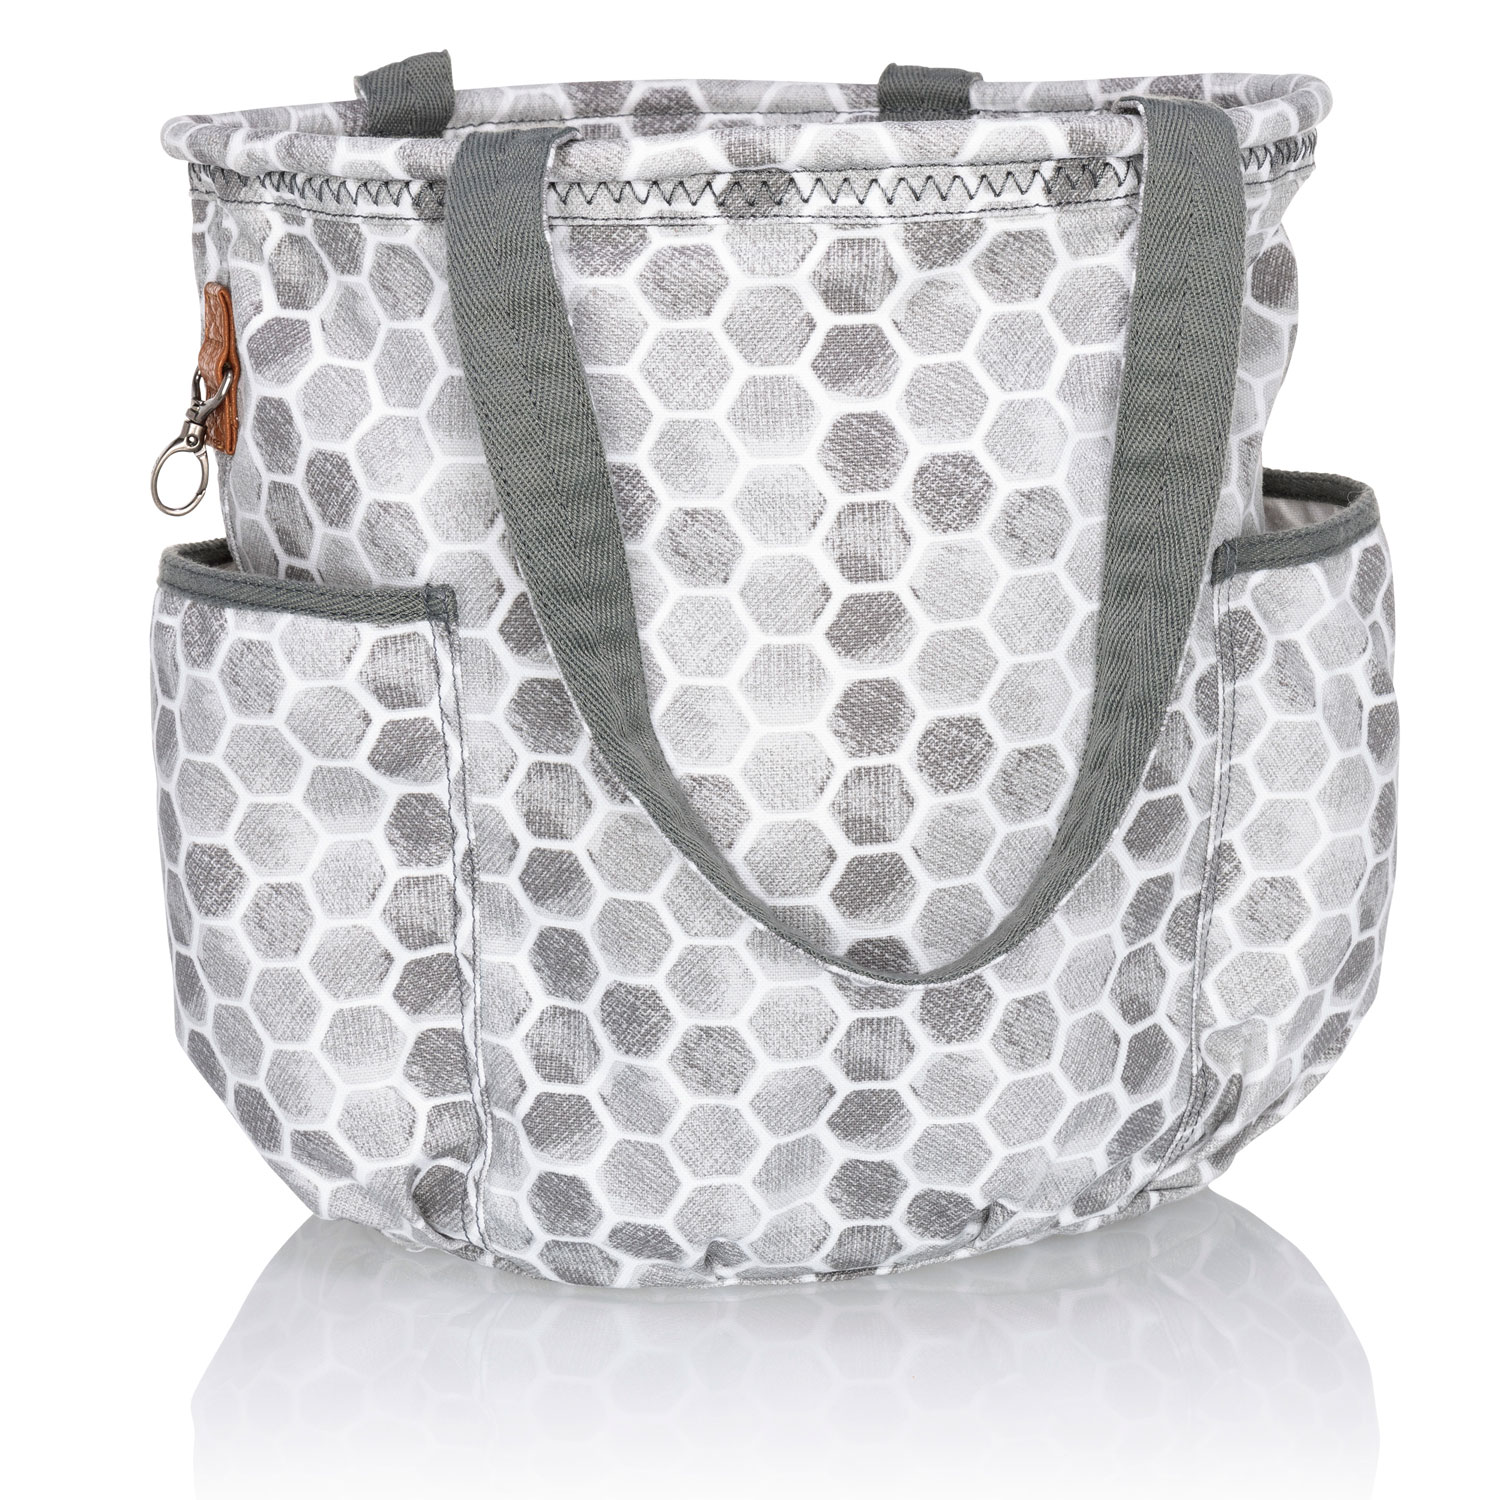 a6616ea88bdb33 Stepping Stones - Retro Metro Bag - Thirty-One Gifts - Affordable ...